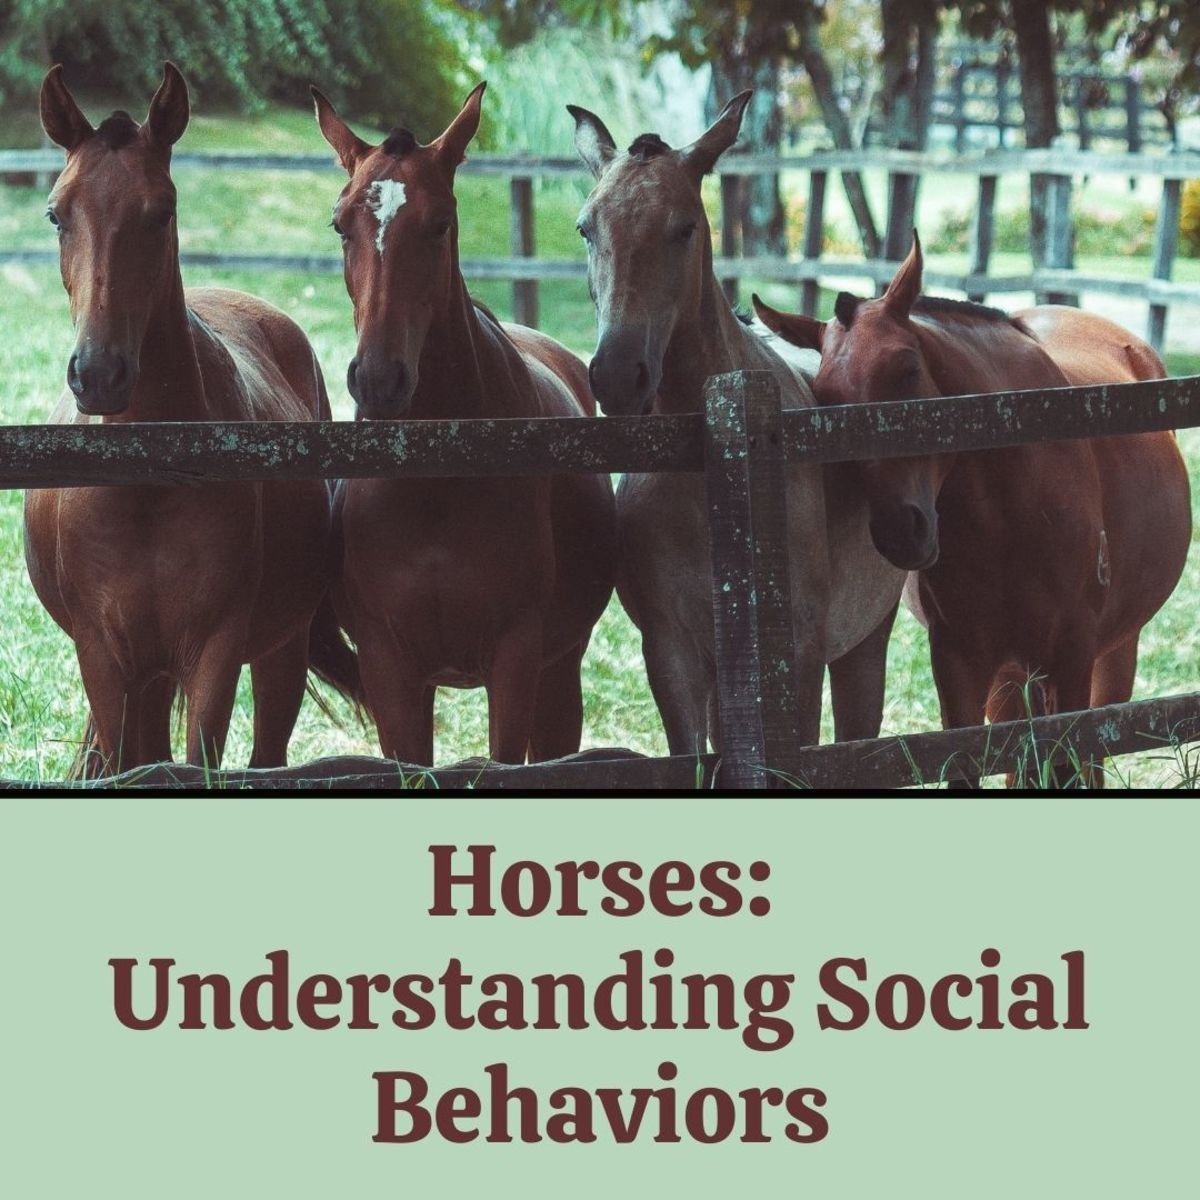 How do factors such as age, gender, and the environment affect equine social behavior? Read on to find out.